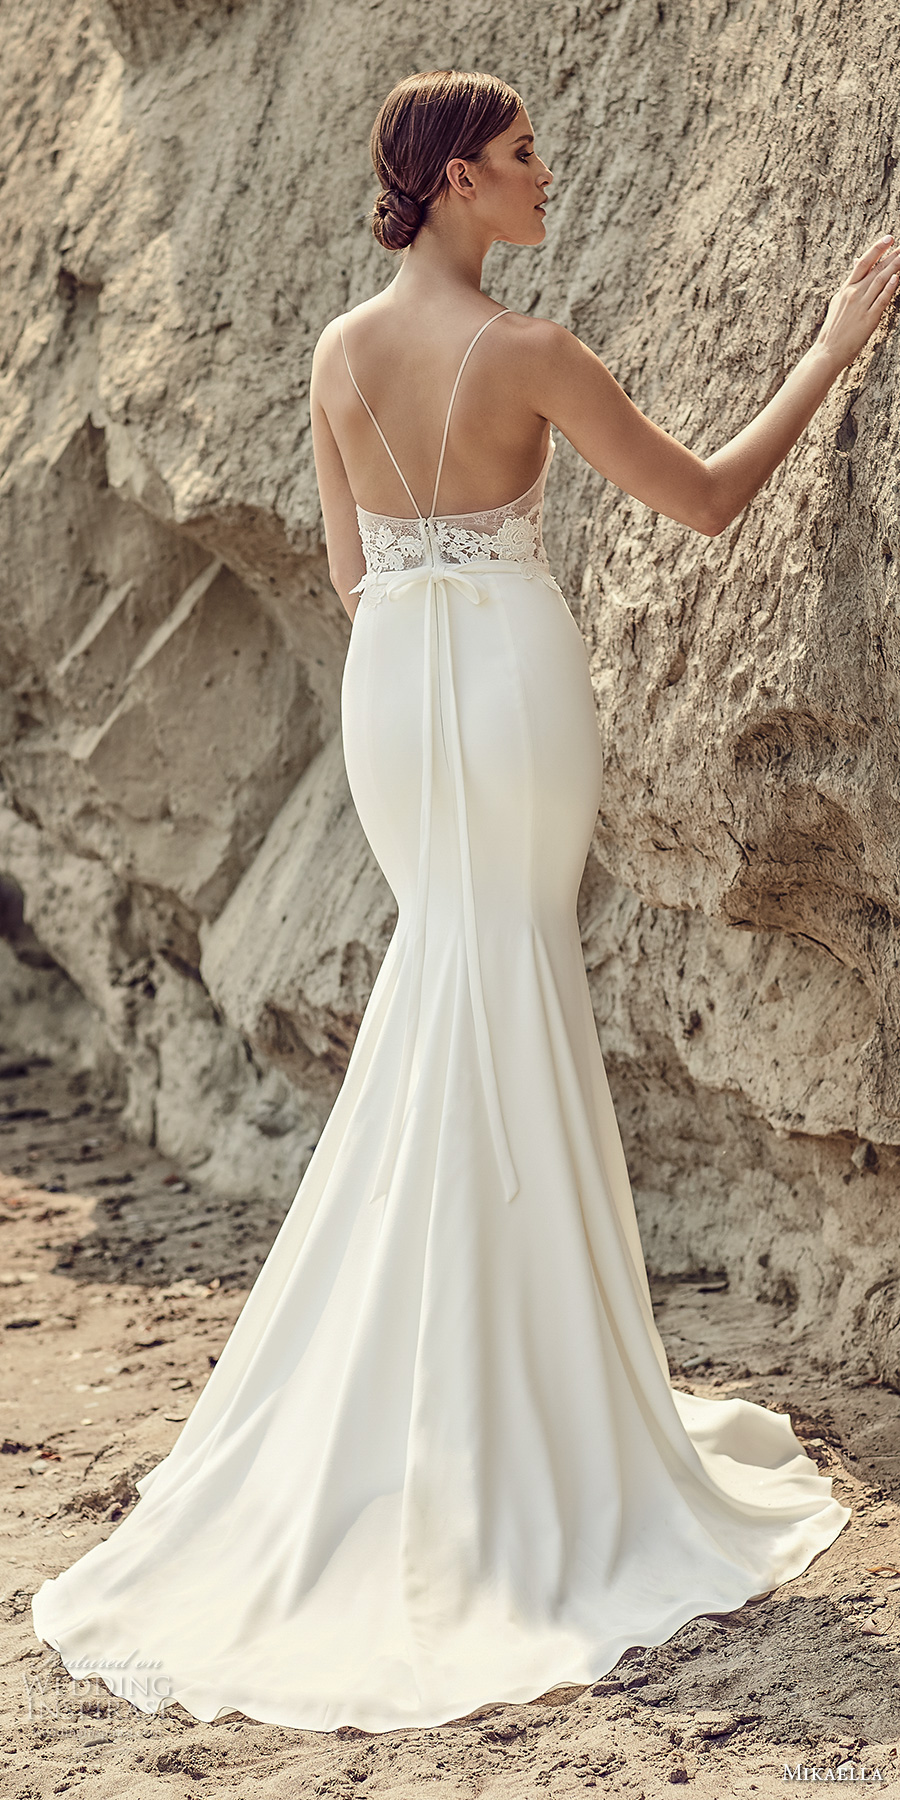 Mikaella Bridal Spring 2017 Wedding Dresses | Wedding ...